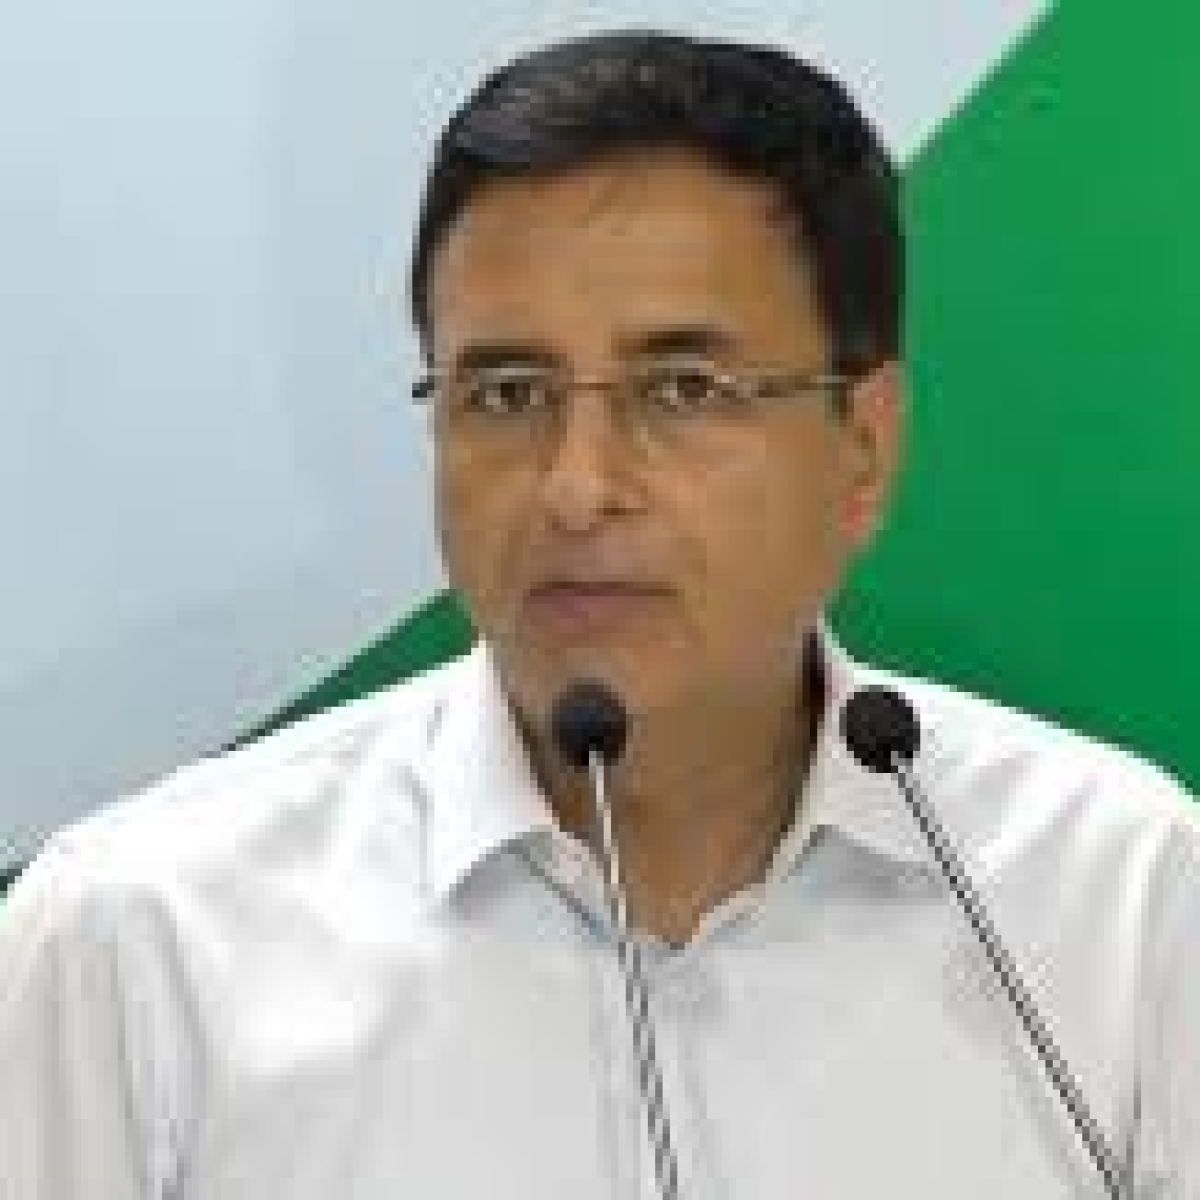 Grant full statehood, conduct elections in Jammu and Kashmir, says Congress